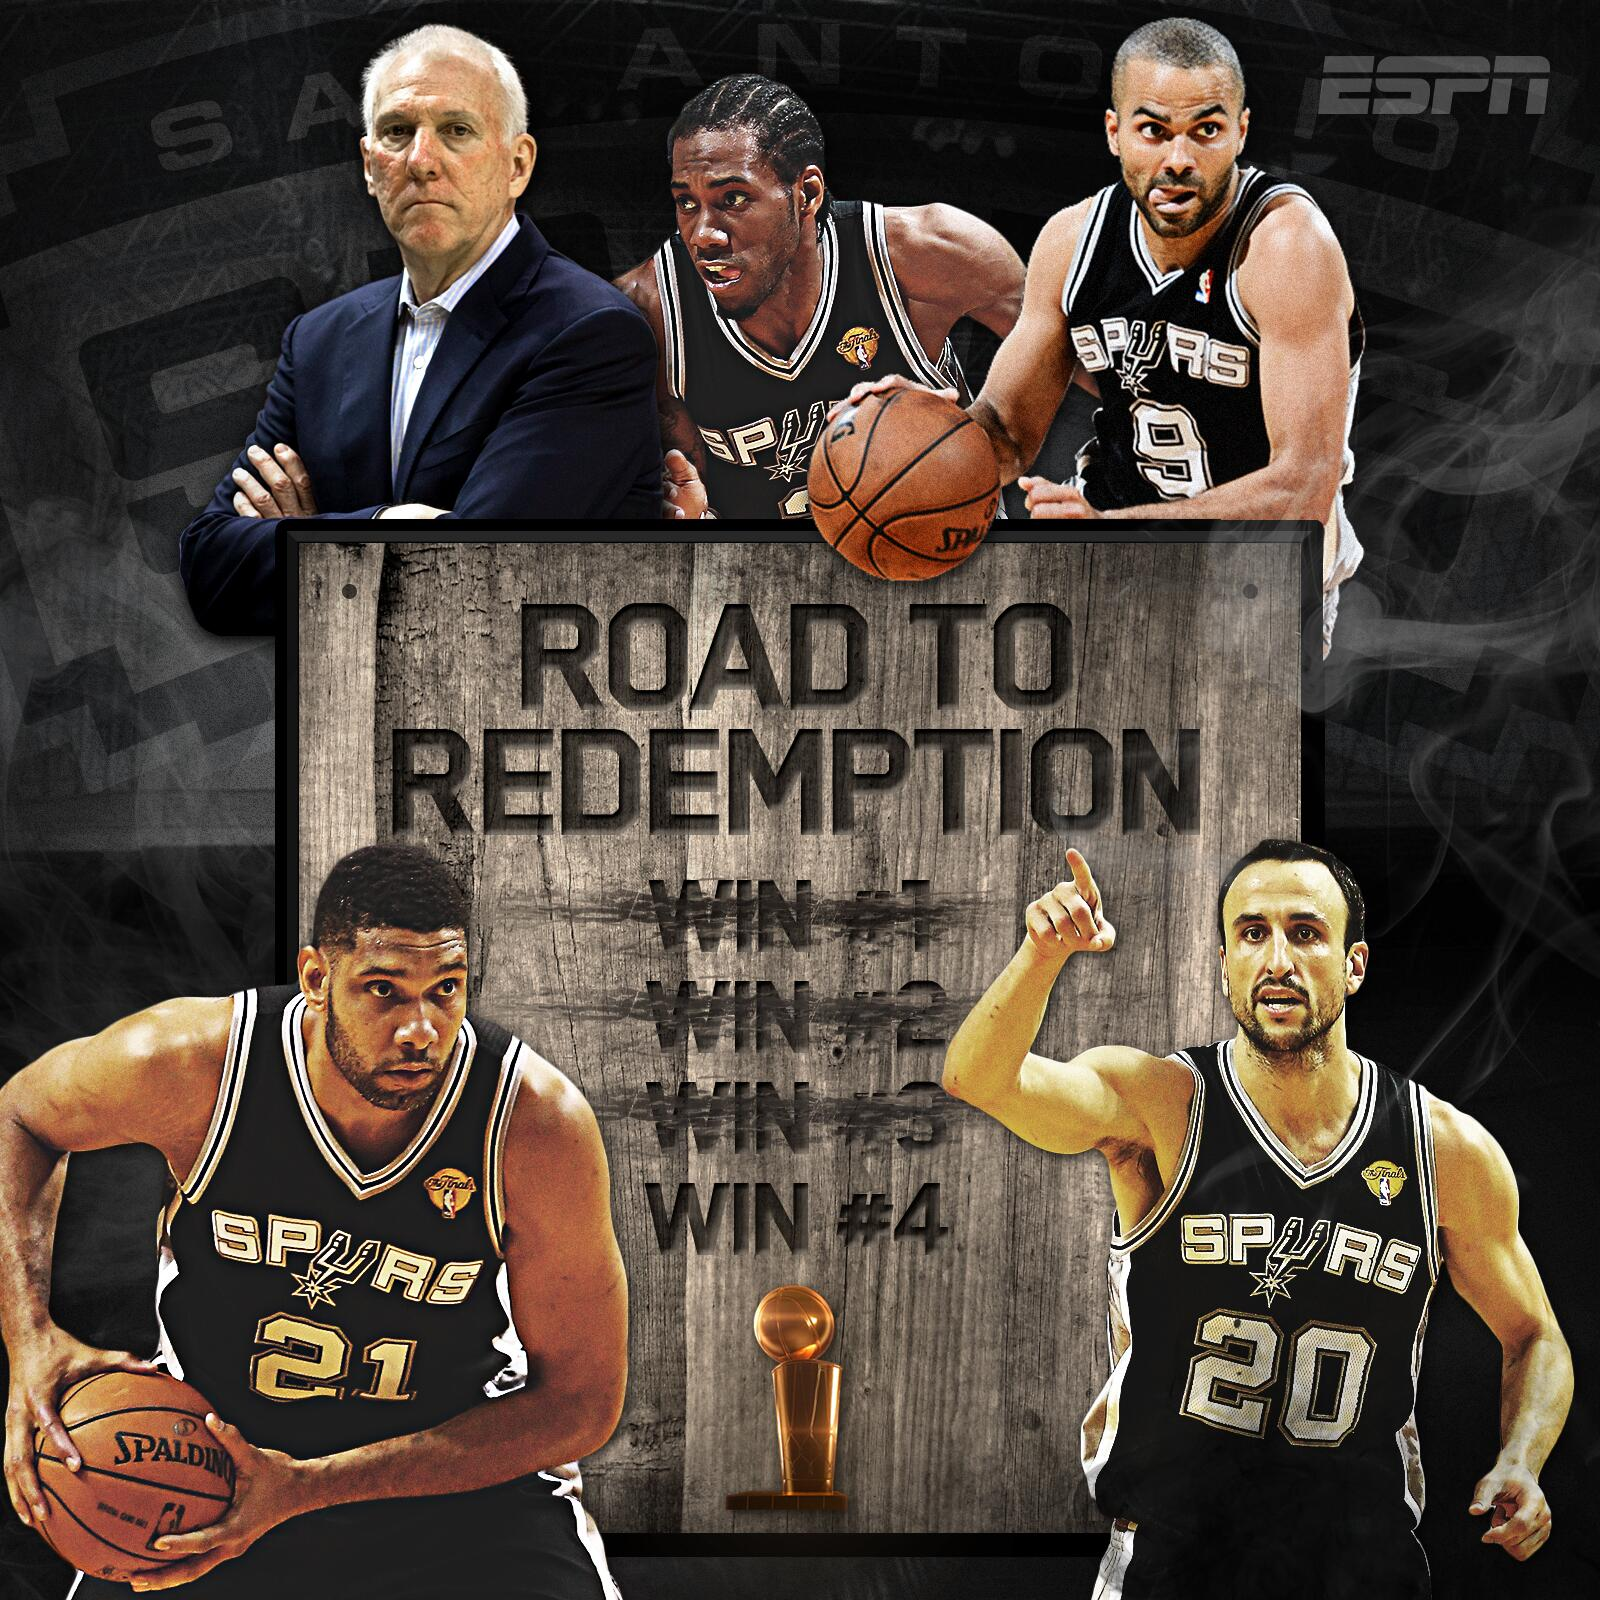 3 down, 1 to go on the Spurs' road to redemption. http://t.co/EbsmDk4mgX